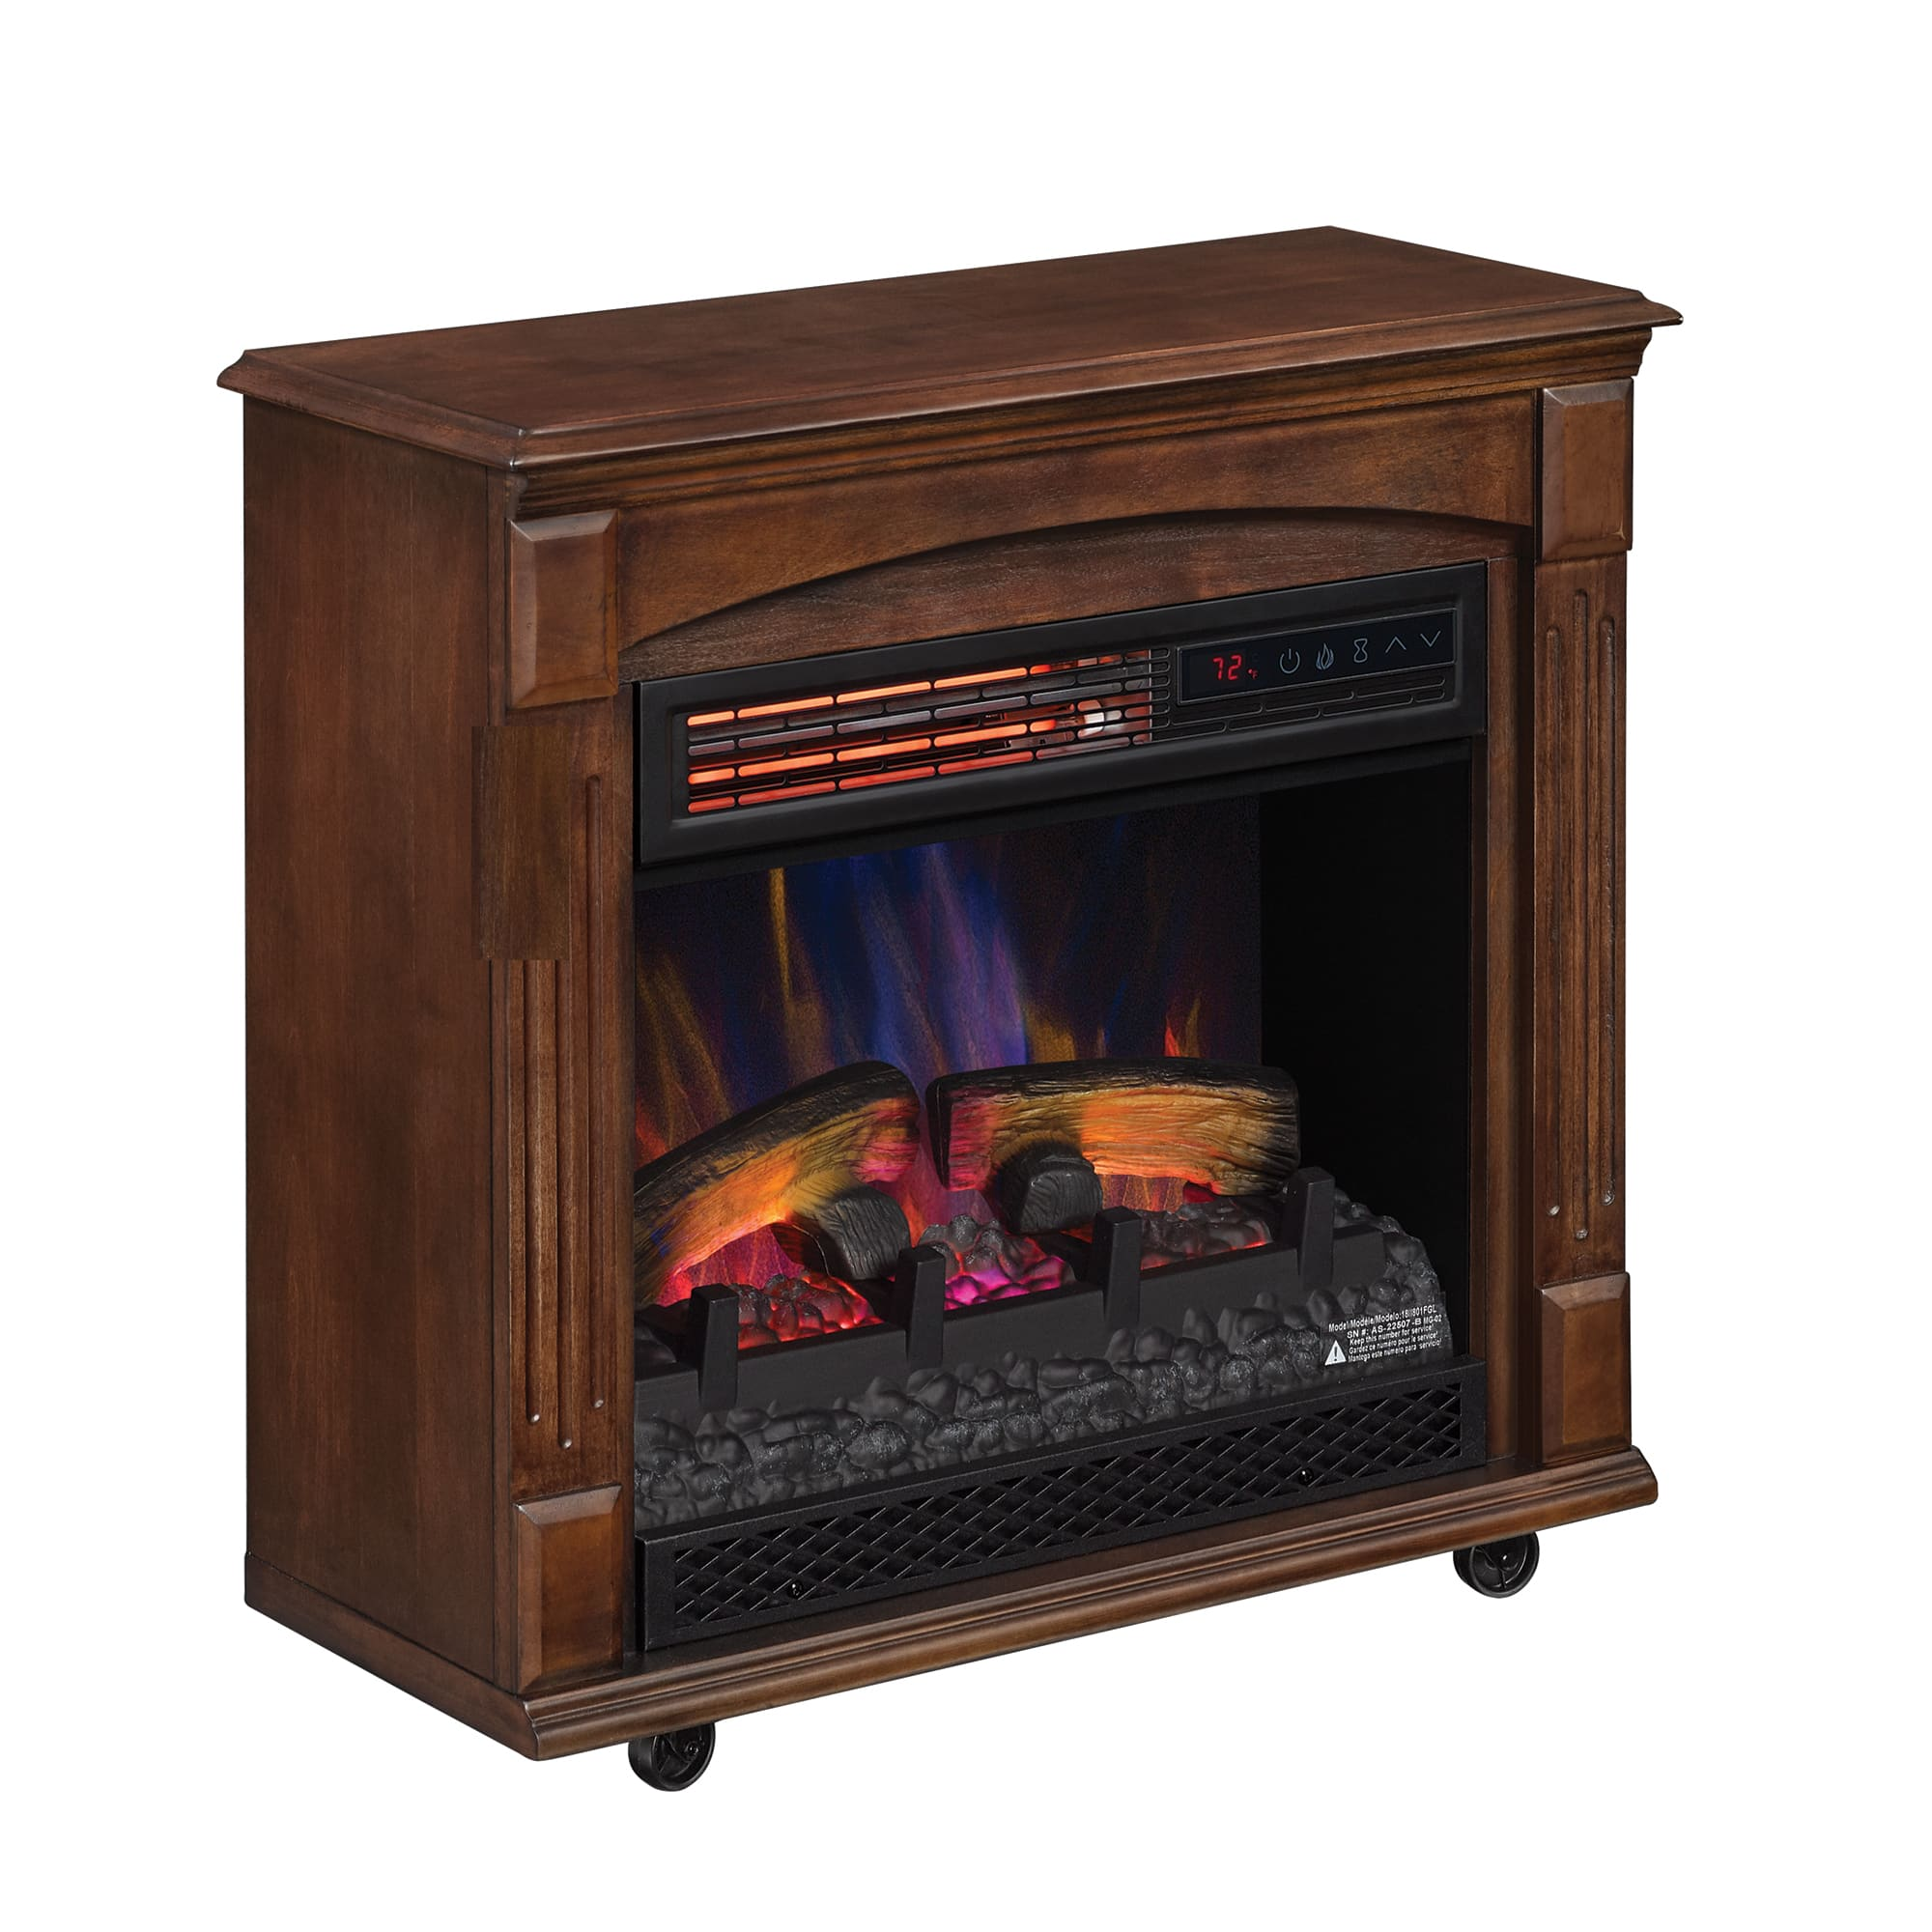 Rolling Mantel with Infrared Quartz Electric Fireplace (Caramel Birch) $99 + Free shipping